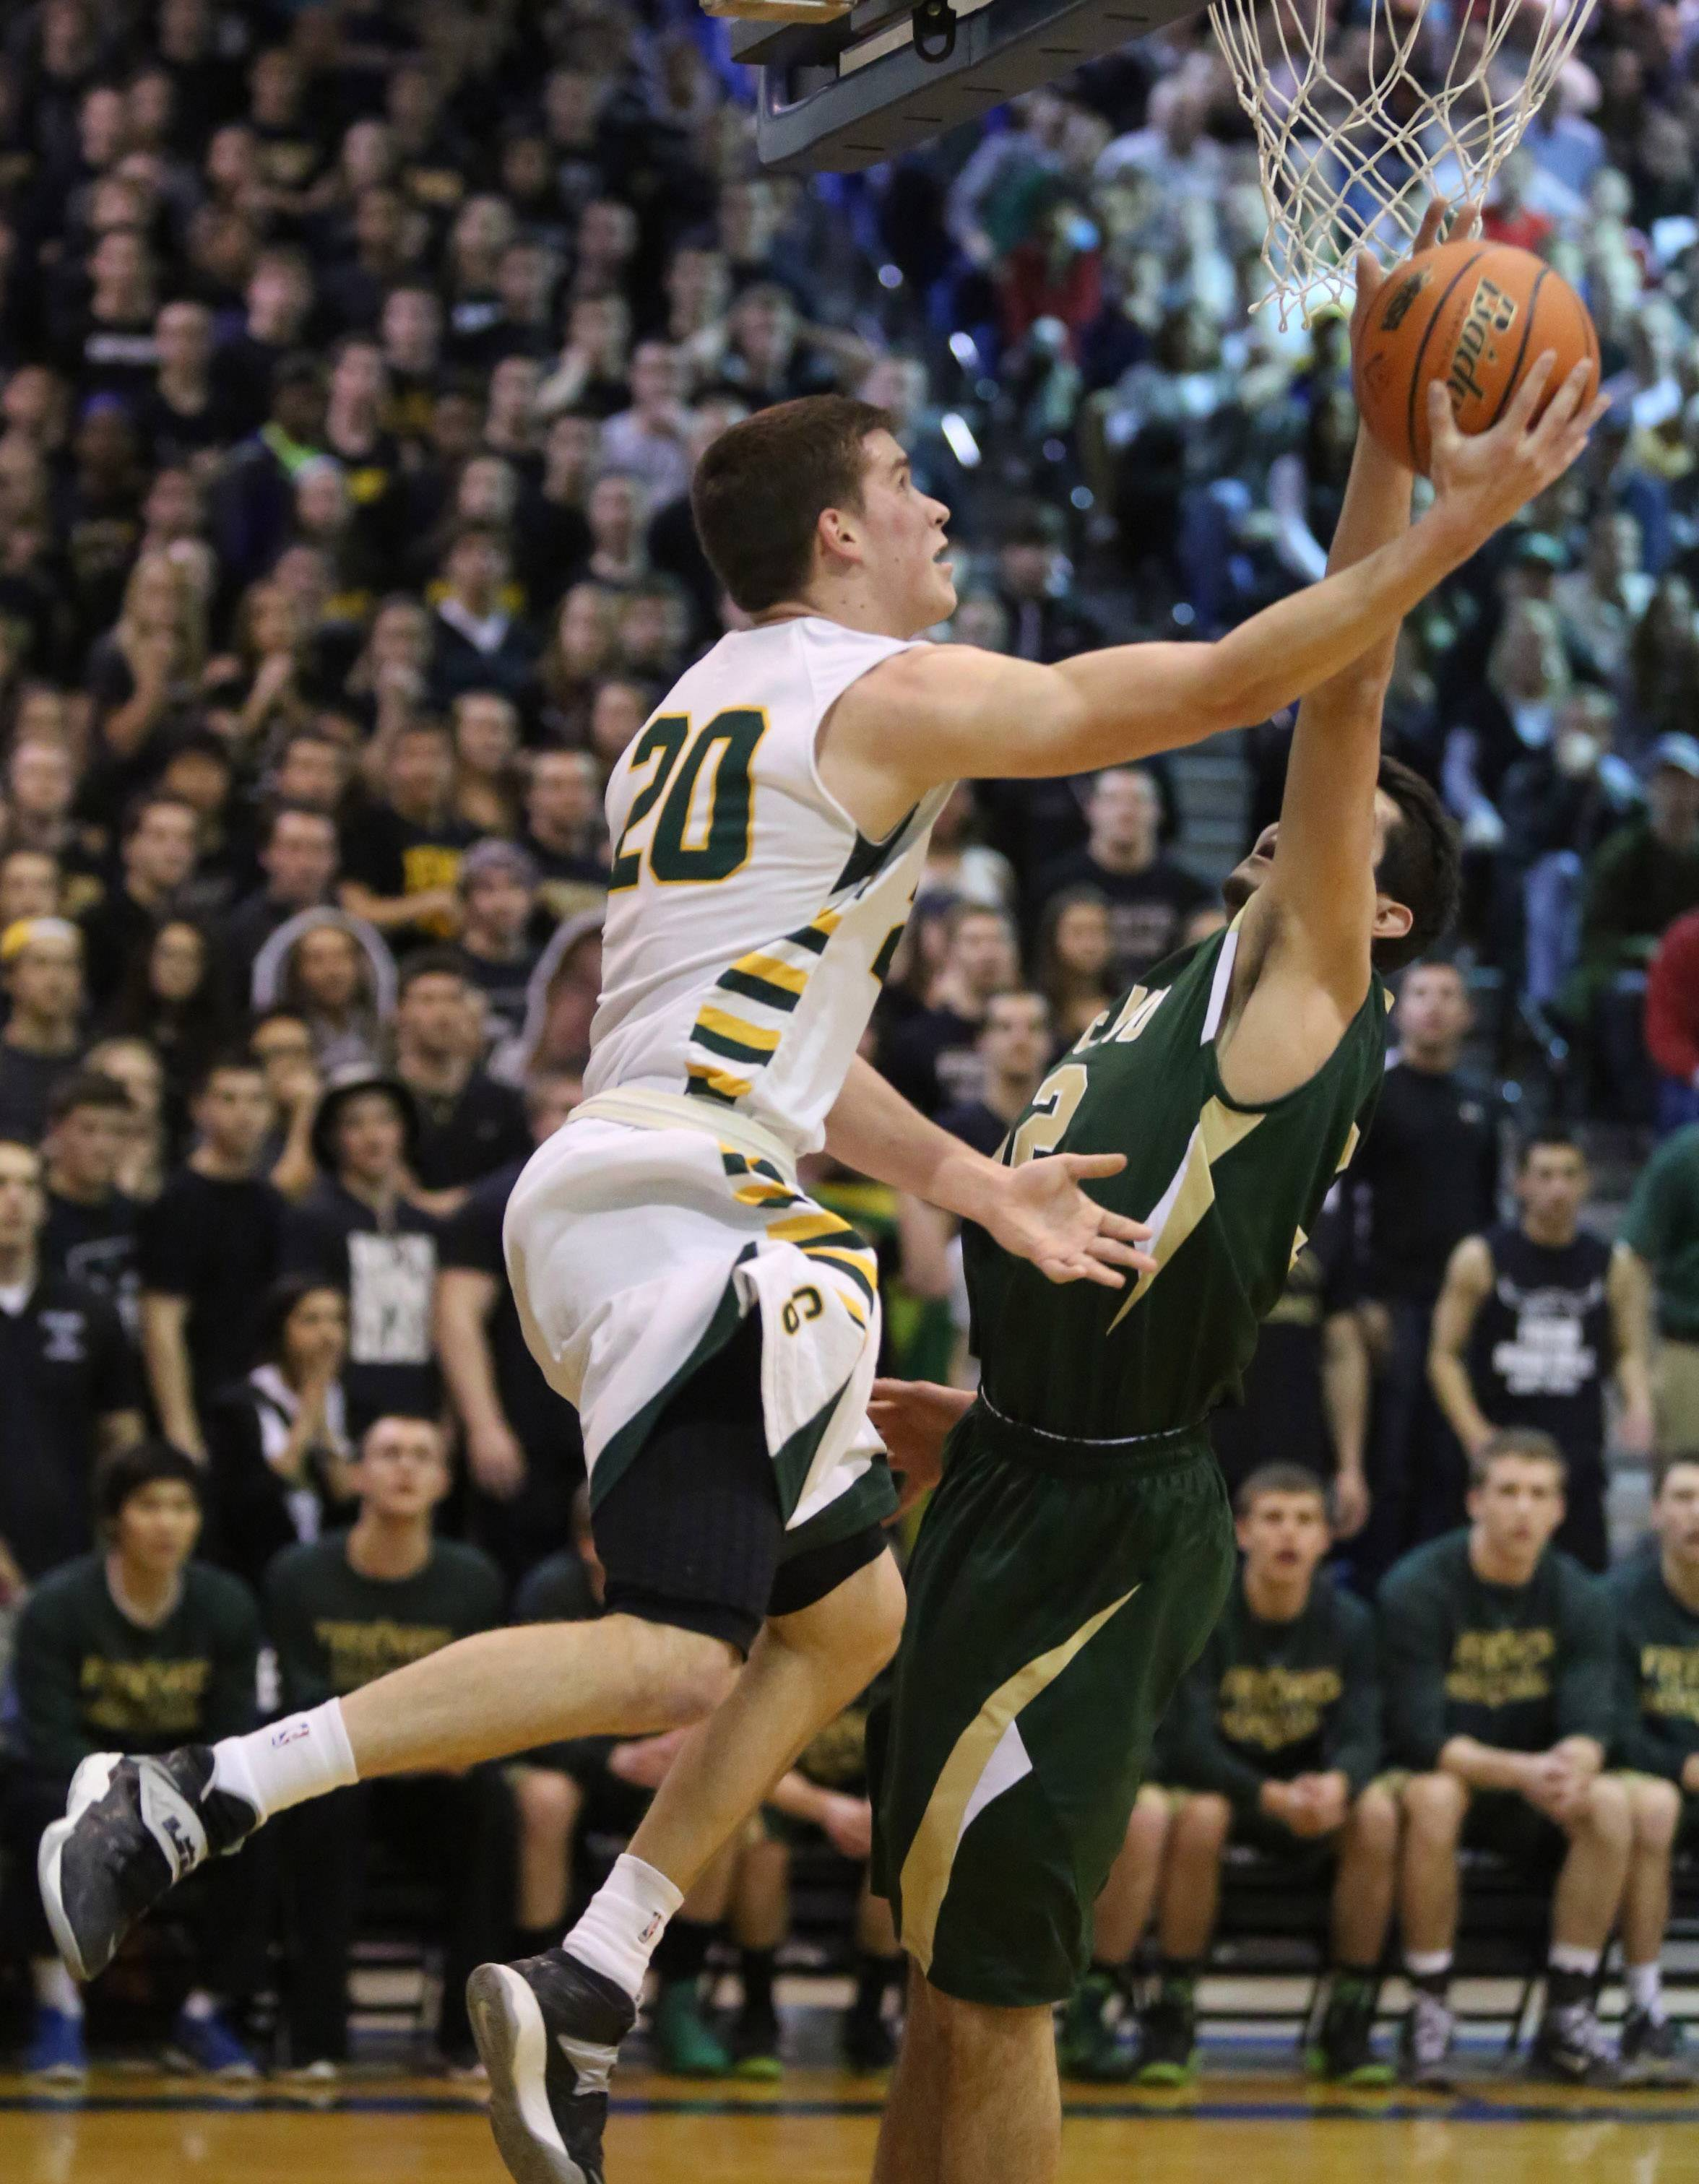 Stevenson guard Matt Morrissey lays the ball up under the basket against Fremd as Stevenson wins the Class 4A sectional final over Fremd on Friday in Lake Zurich.